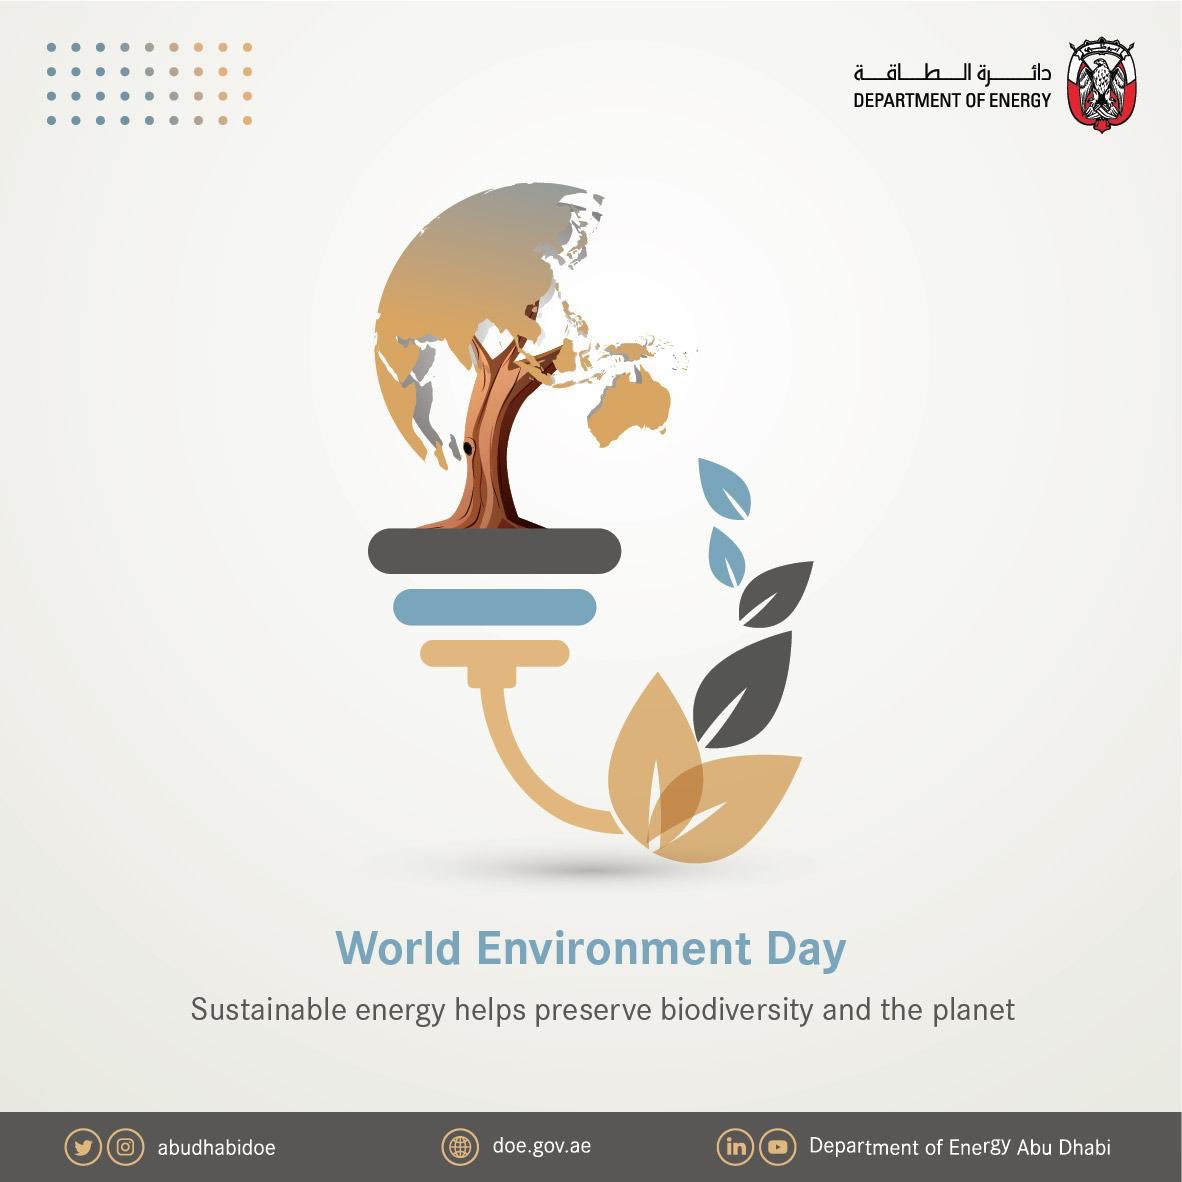 World Environment Day this year celebrates biodiversity. It's a reminder of the need to transition towards clean and sustainable energy to preserve biodiversity and protect our planet.  #ForNature #WorldEnvironmentDay #WED2020 #DoE #Energy #TowardsaNewEnergyEra #StayHome https://t.co/6oPhSx5Eft